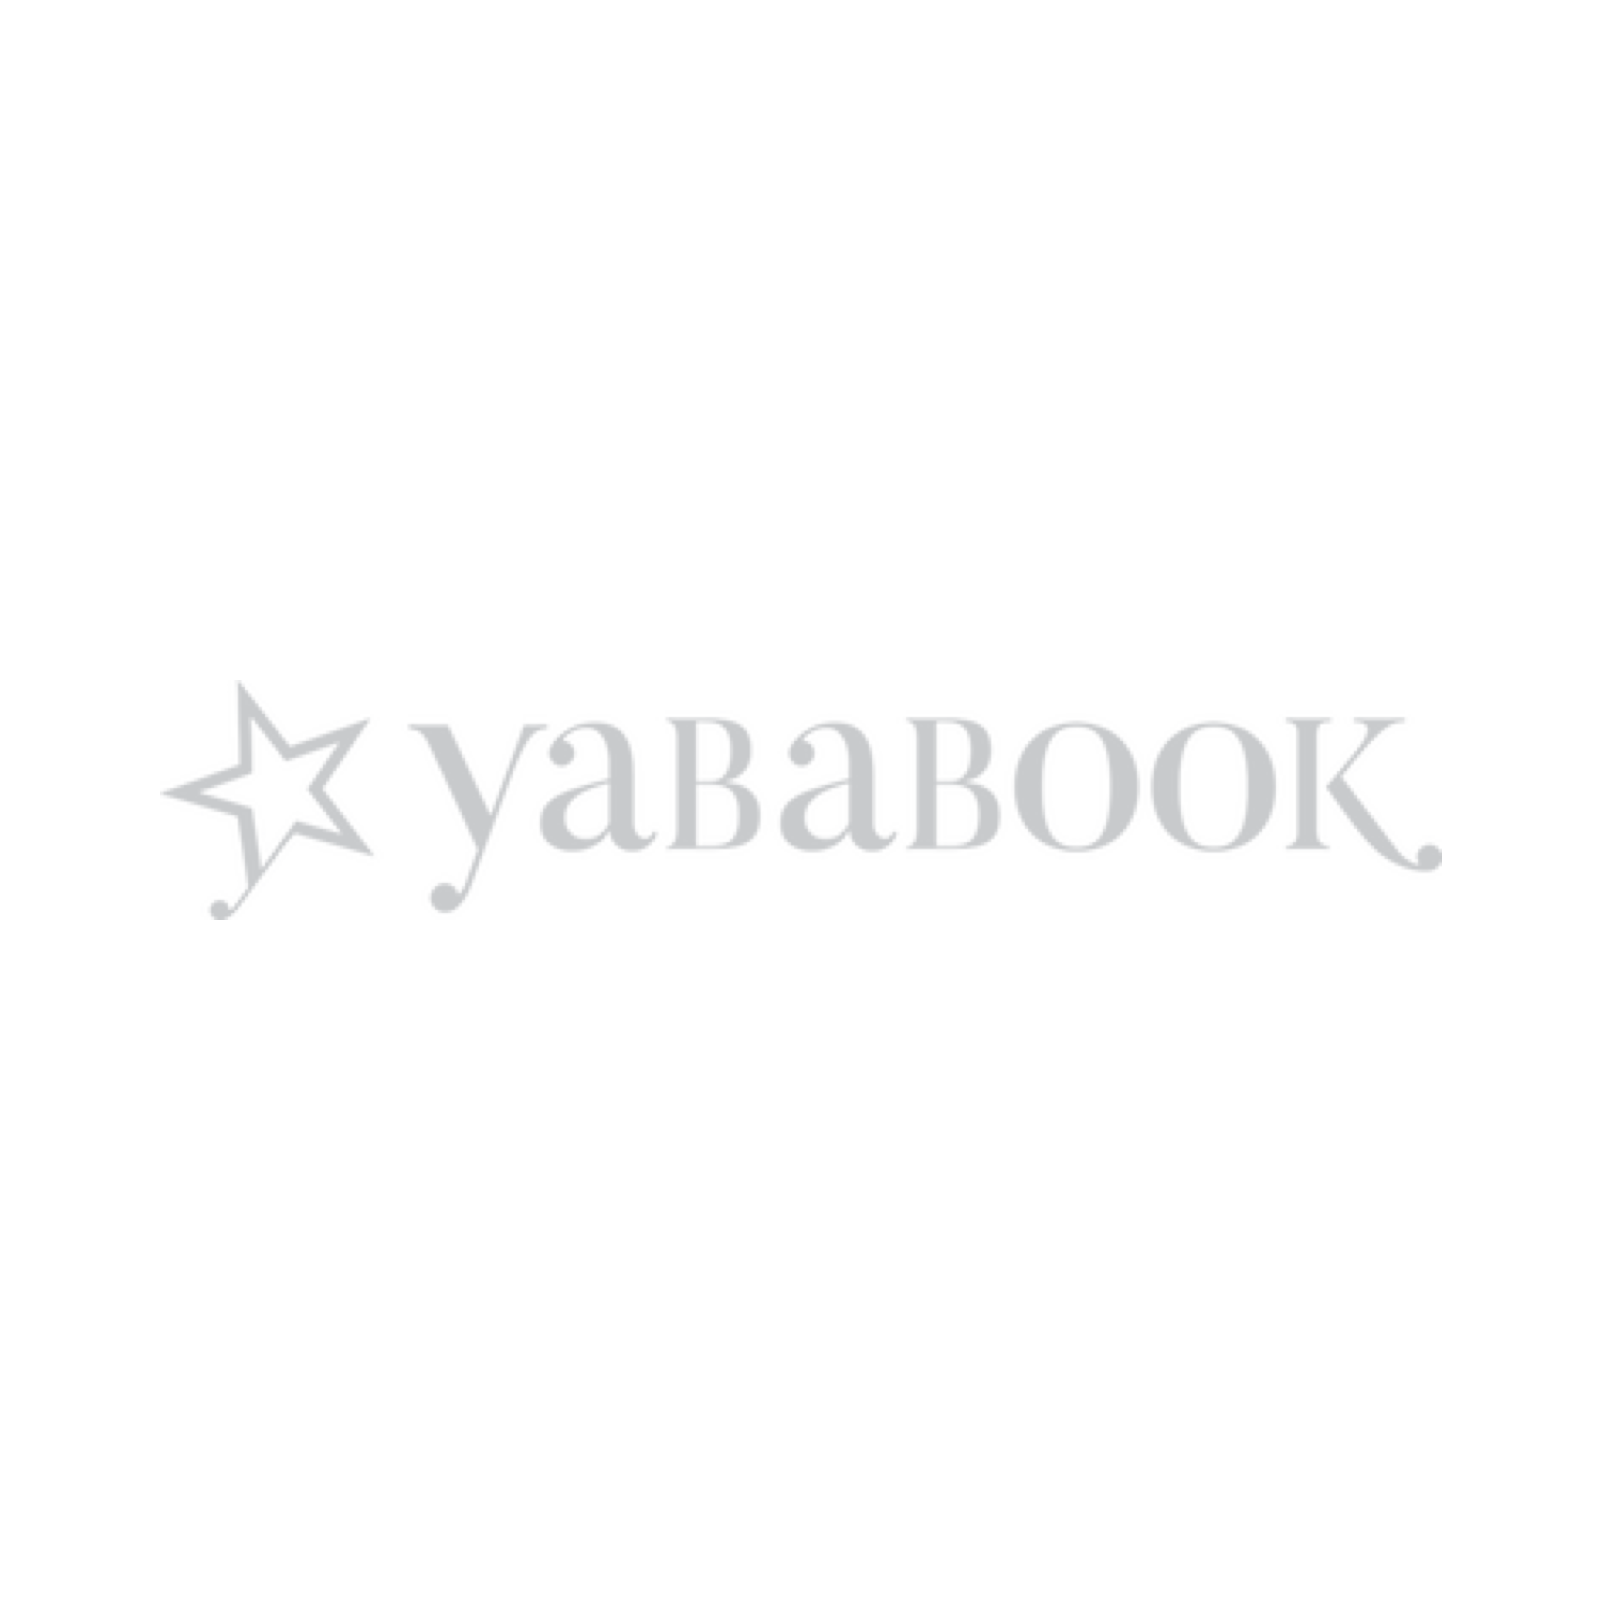 Copy of Yababook Logo